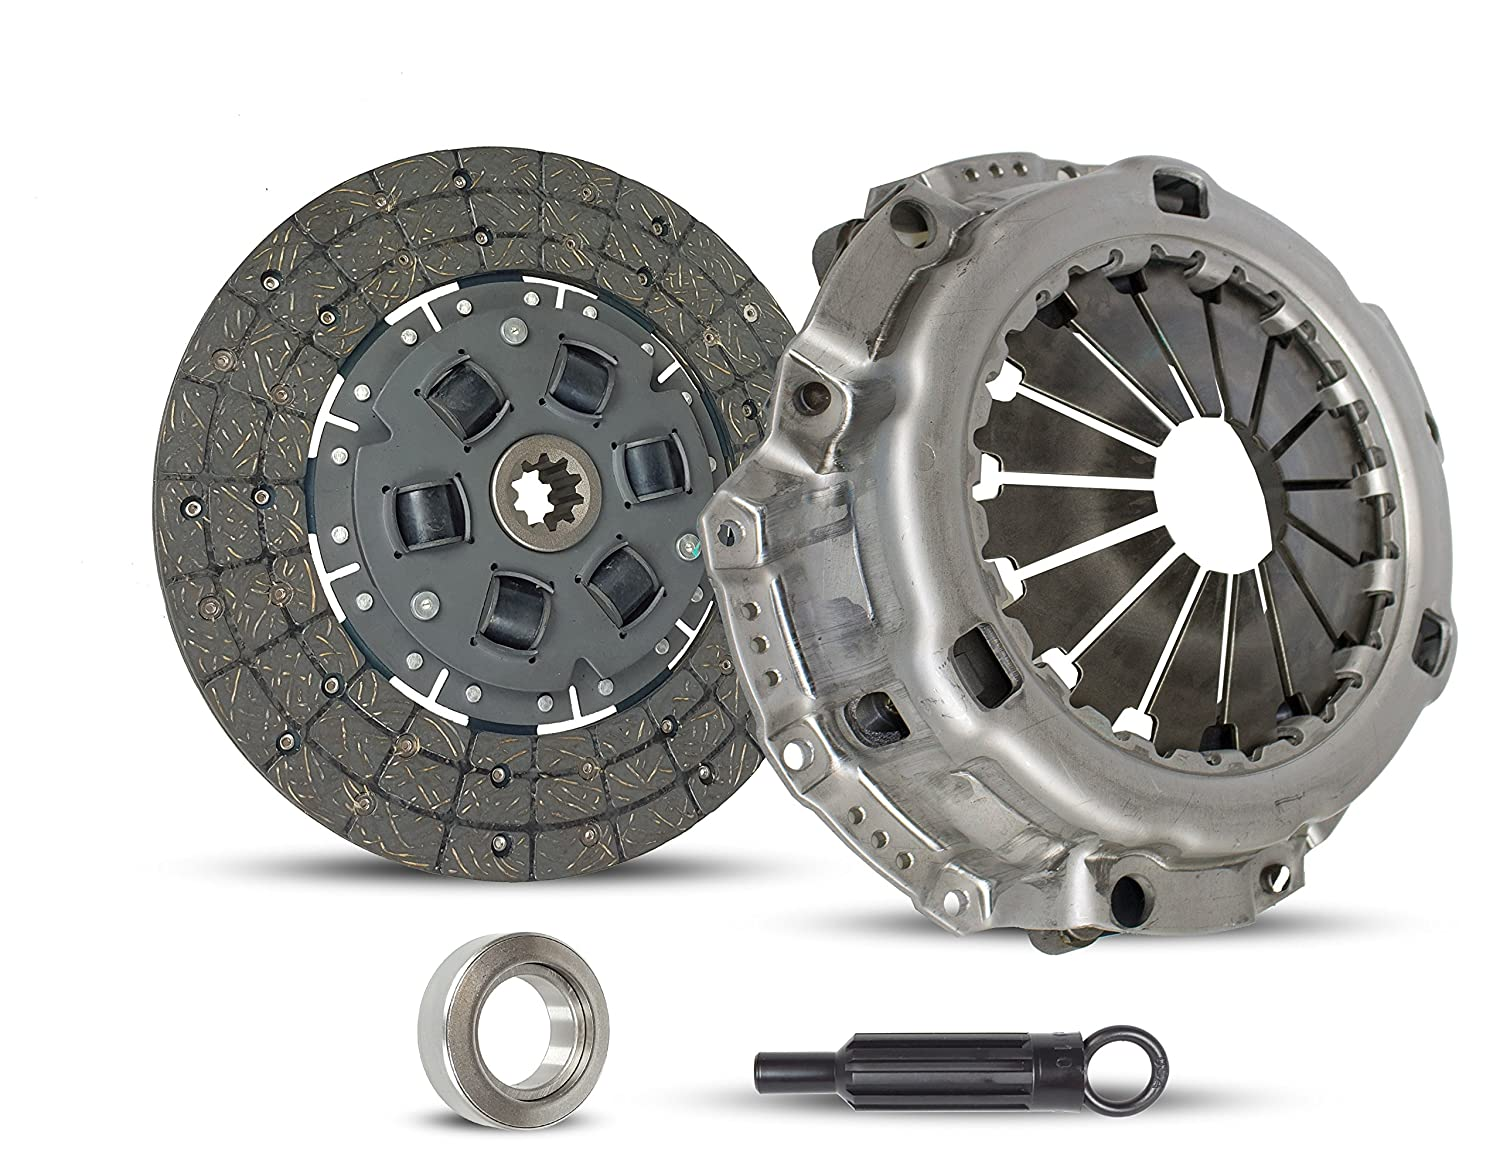 Clutch Kit Works With Toyota Land Cruiser Suv Base Sport Utility Standard Cab Pickup 1975-1987 4.2L l6 GAS OHV Naturally Aspirated (FJ40; FJ45; FJ55; FJ60)